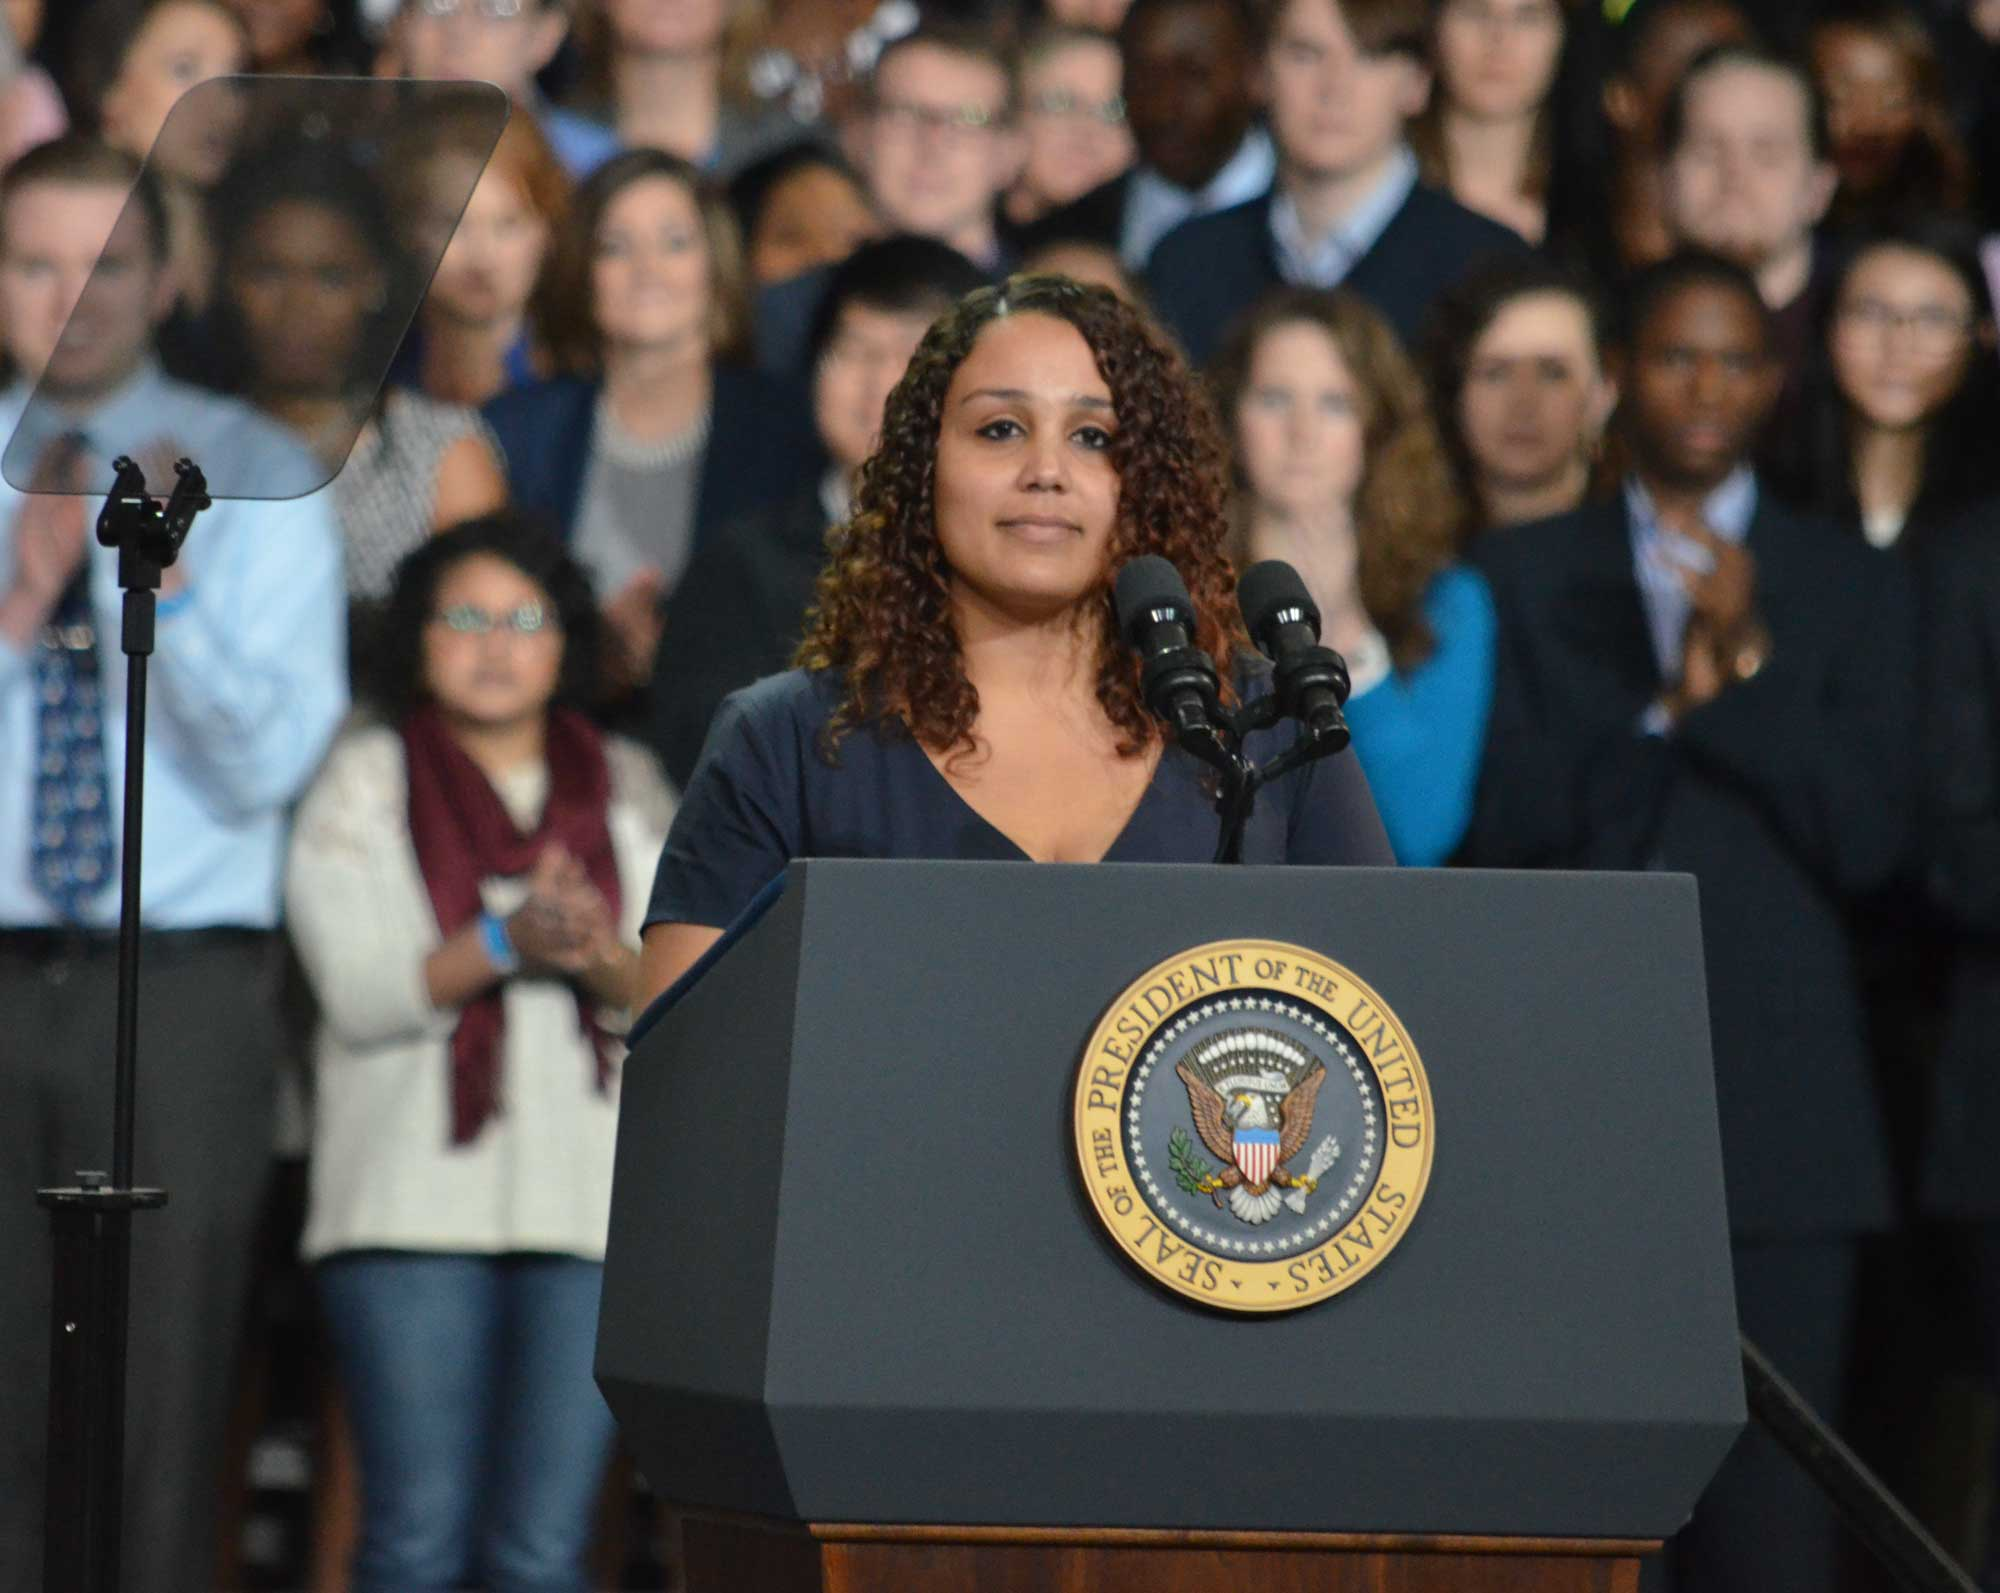 President Obama is introduced by KU senior Alyssa Cole. (Photo by Sheri Hamilton/KPR)